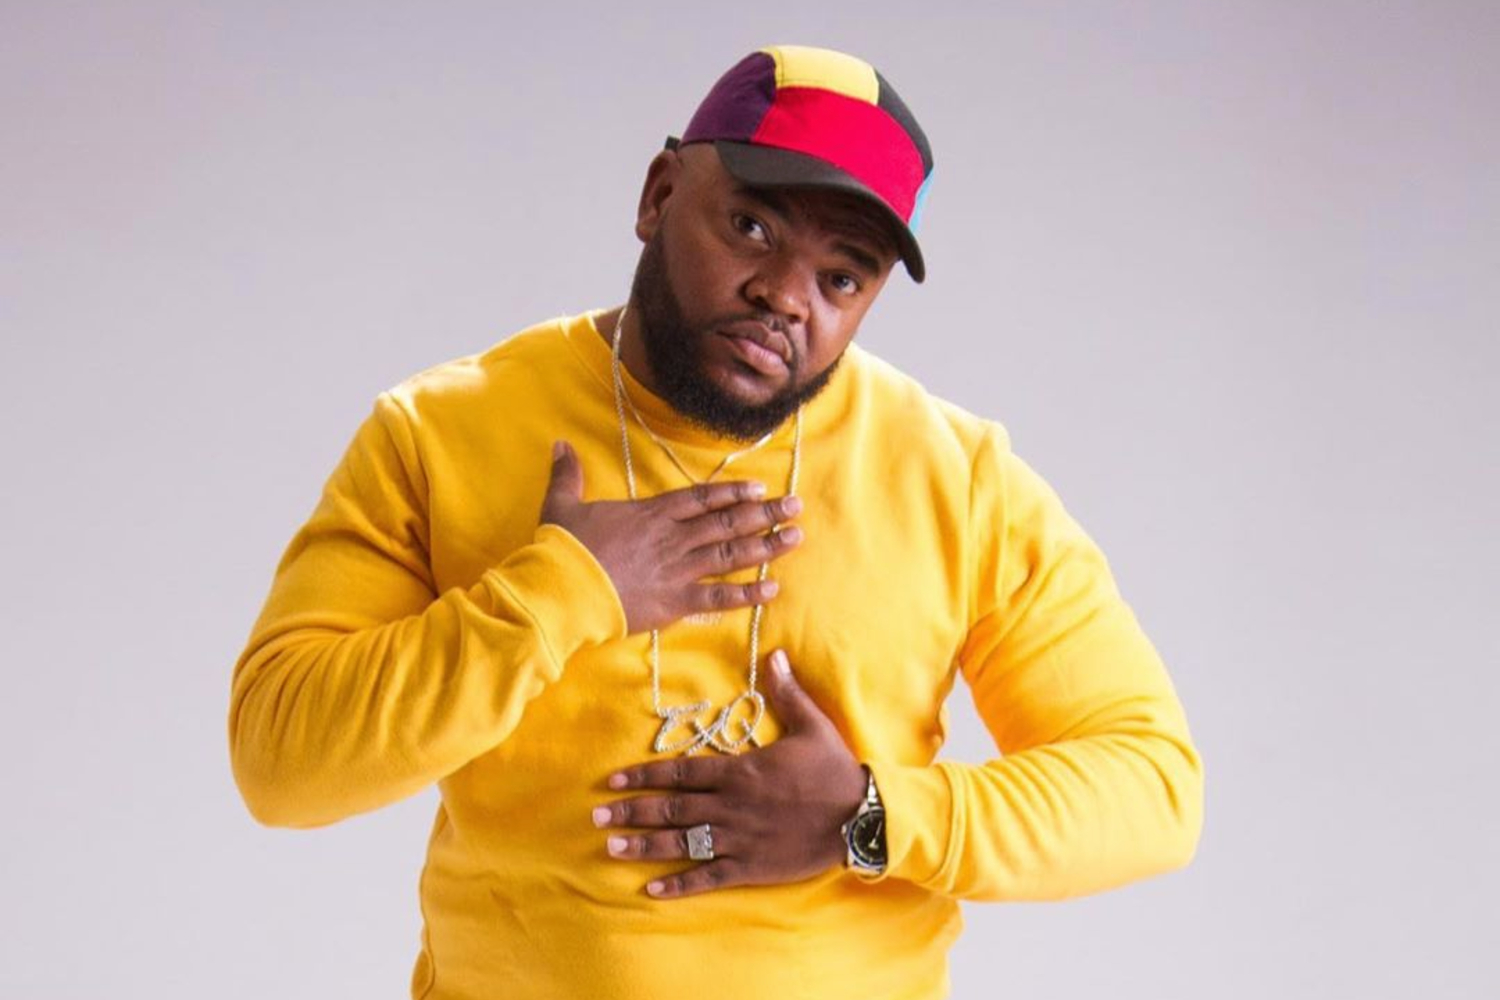 ExQ's Wakatemba Taken Down From YouTube After Row With Co-Singer Tocky Vibes